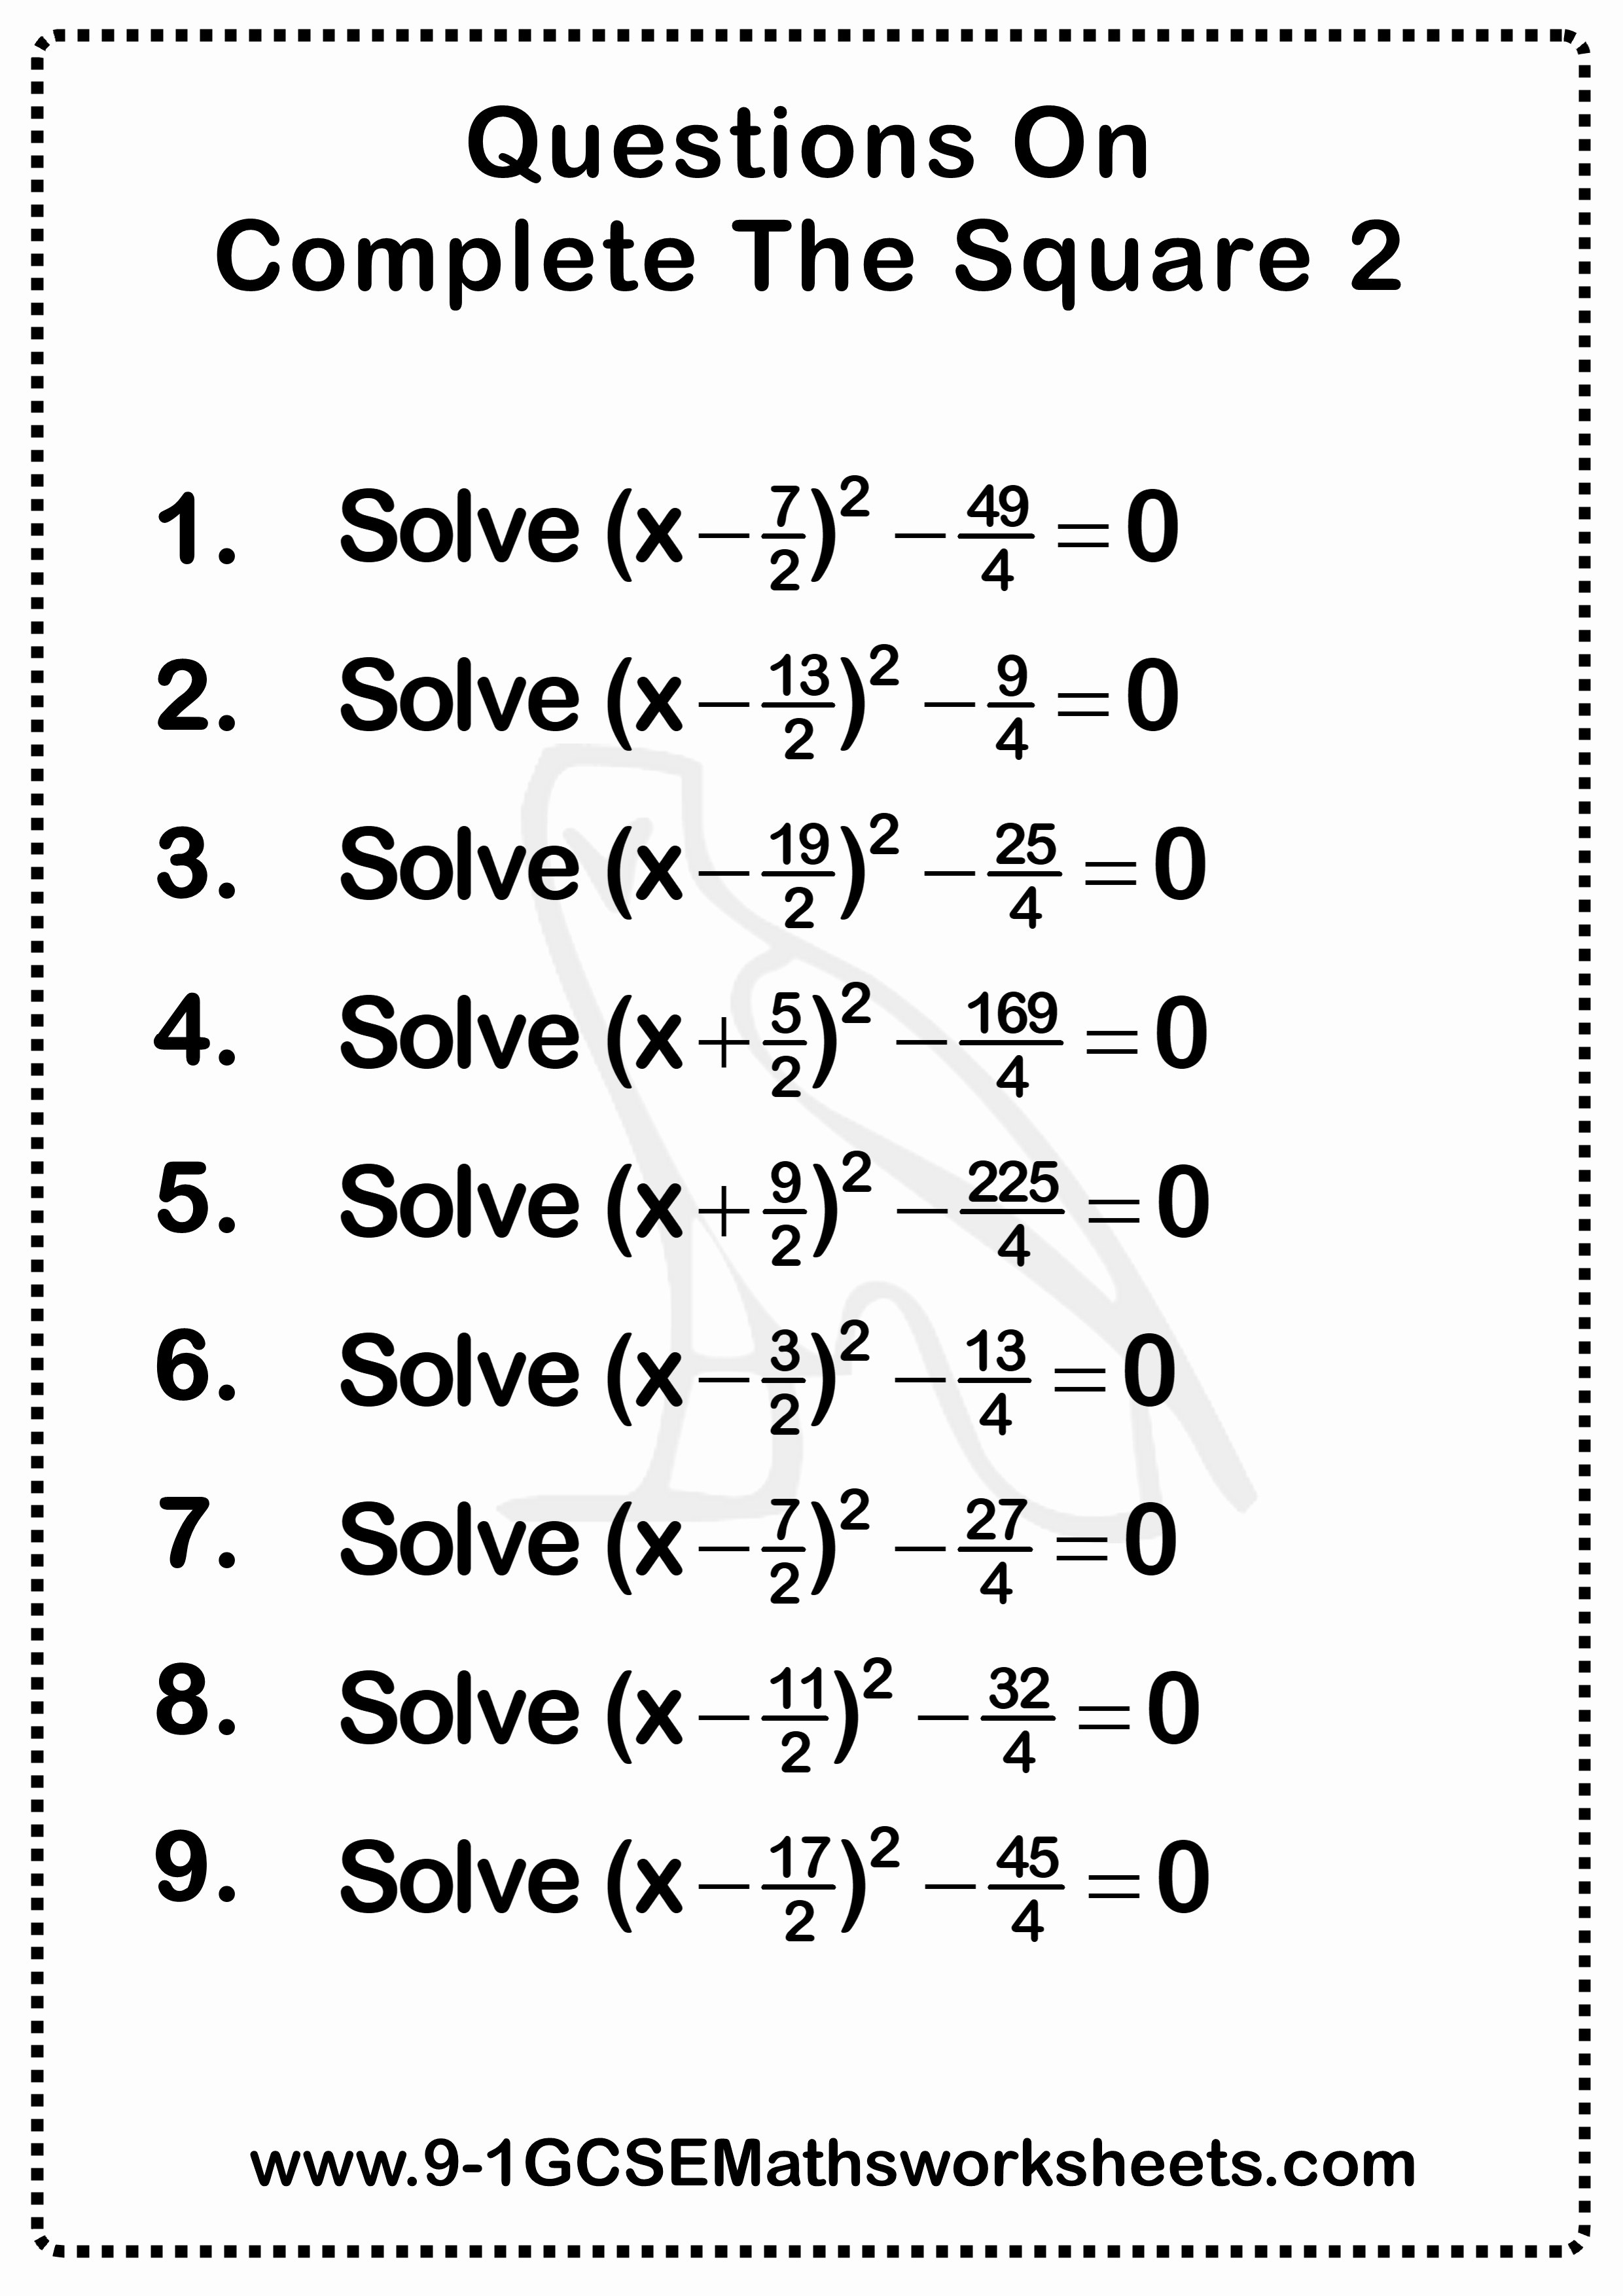 50 Completing The Square Practice Worksheet